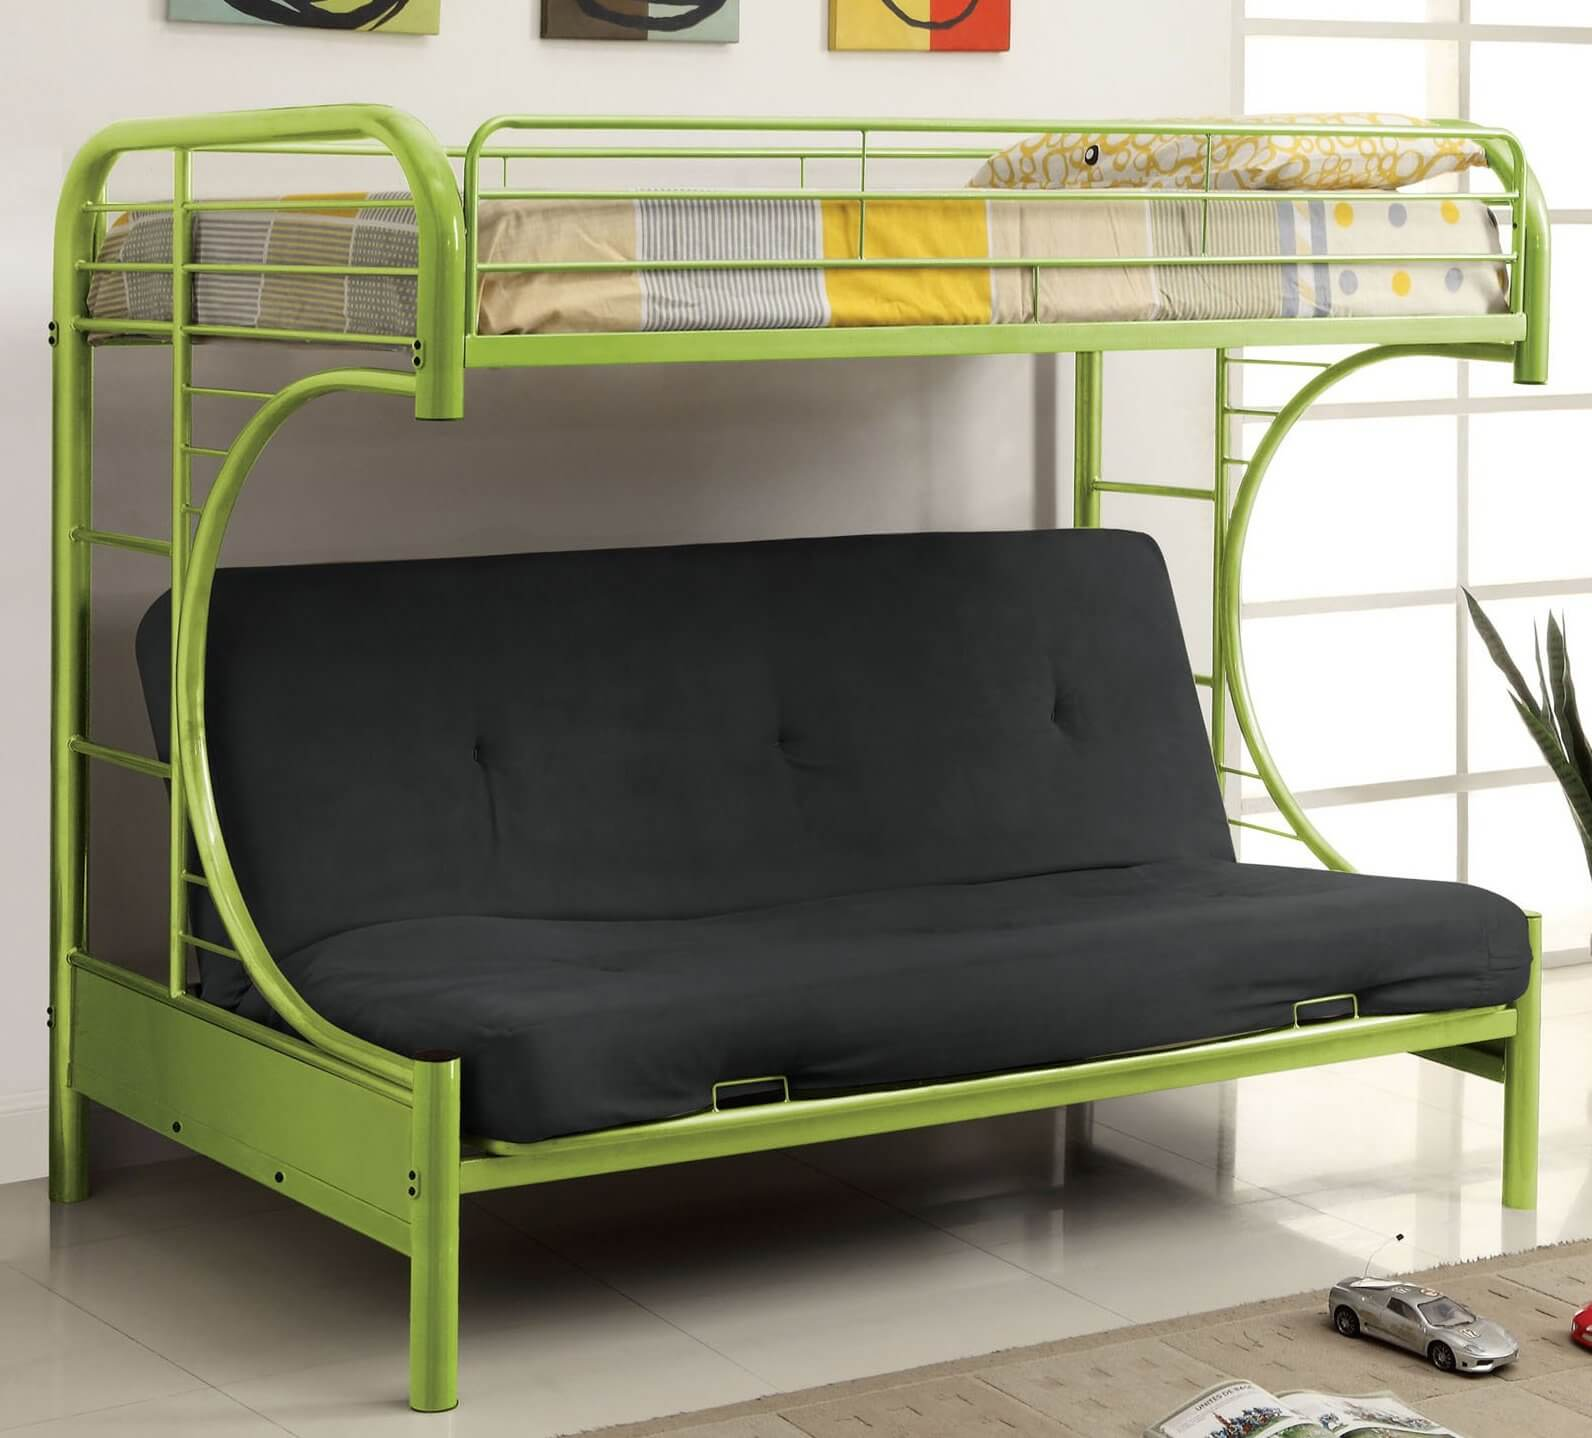 Possibly the most innovative, and definitely the most elaborate futon design, these are a perfect centerpiece for any child's bedroom or dorm room. Combining the traditional futon setup with a full bunk bed frame, they allow for seating and two full beds in a compact space.